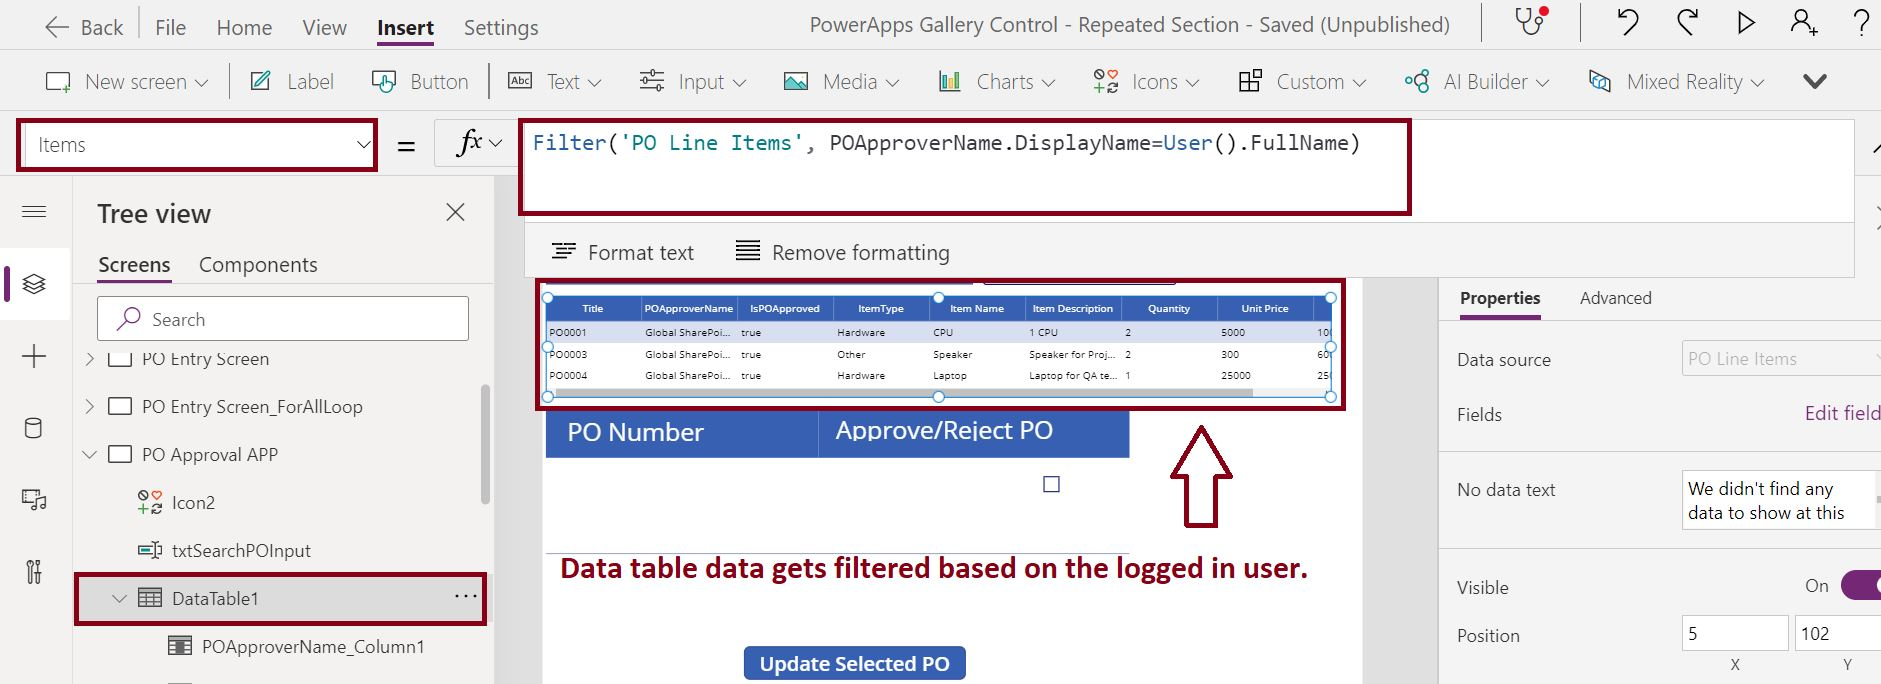 Filter PowerApps data table items based on the logged in user